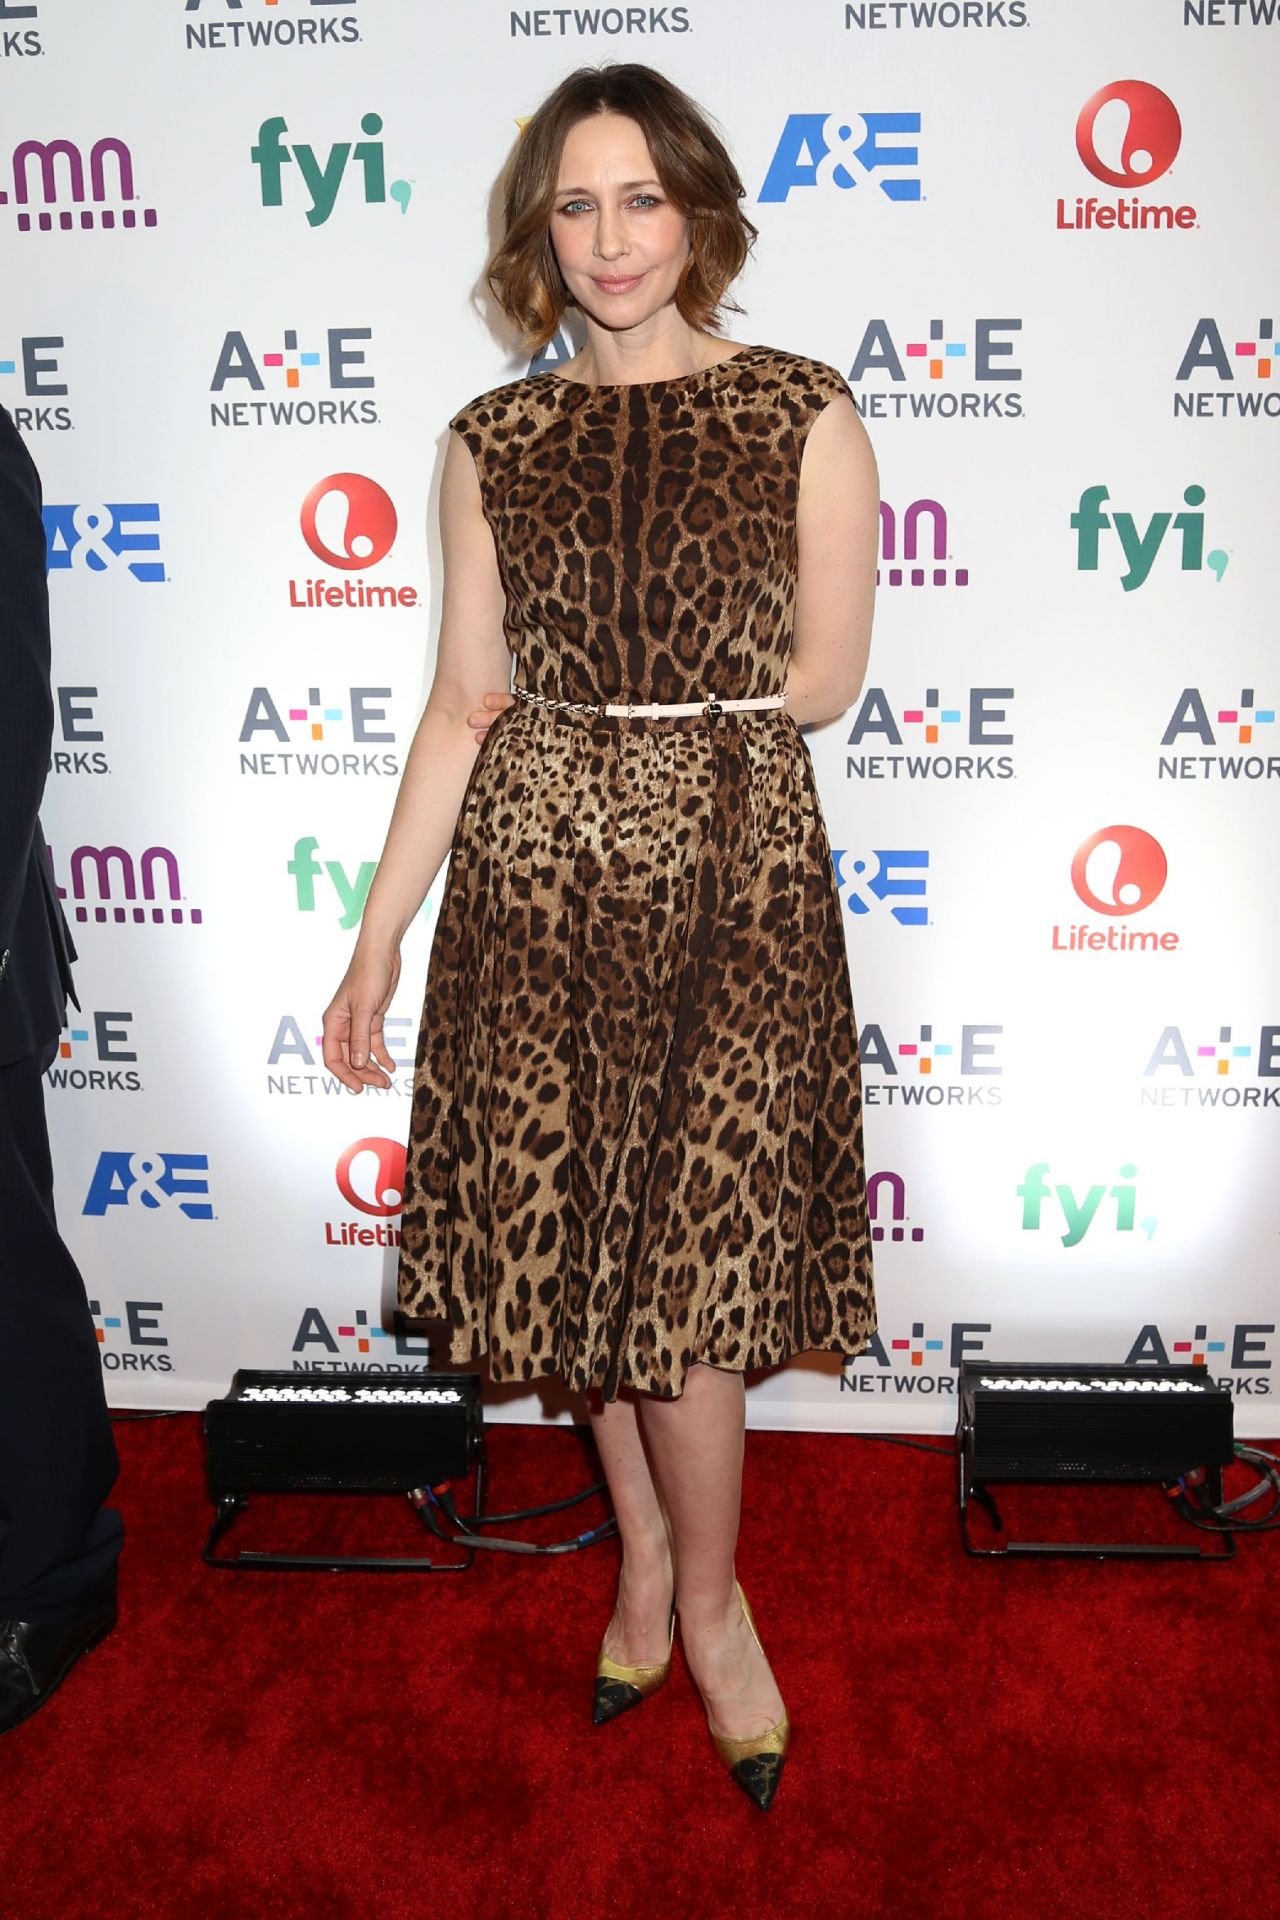 Vera Farmiga - A+E Networks Upfront - May 2014